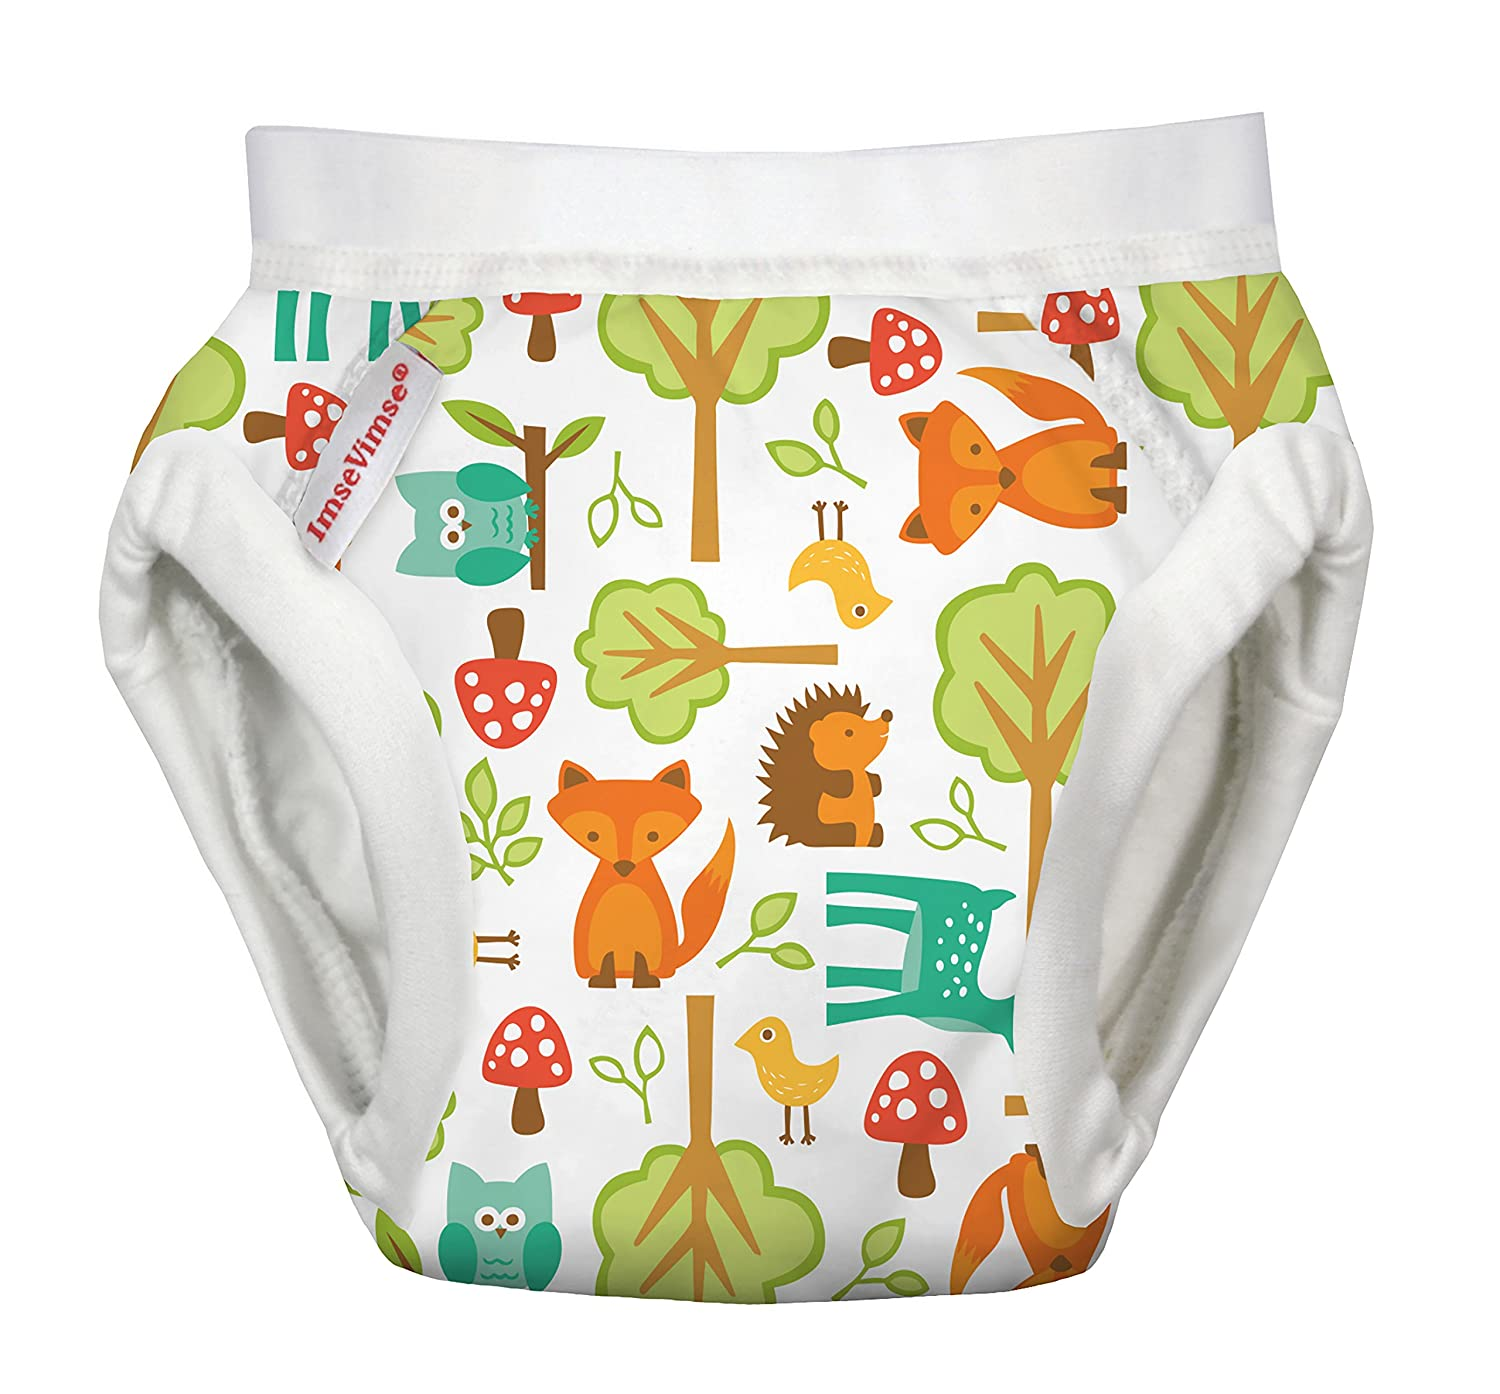 ImseVimse Training Pants Nappy Woodland Design